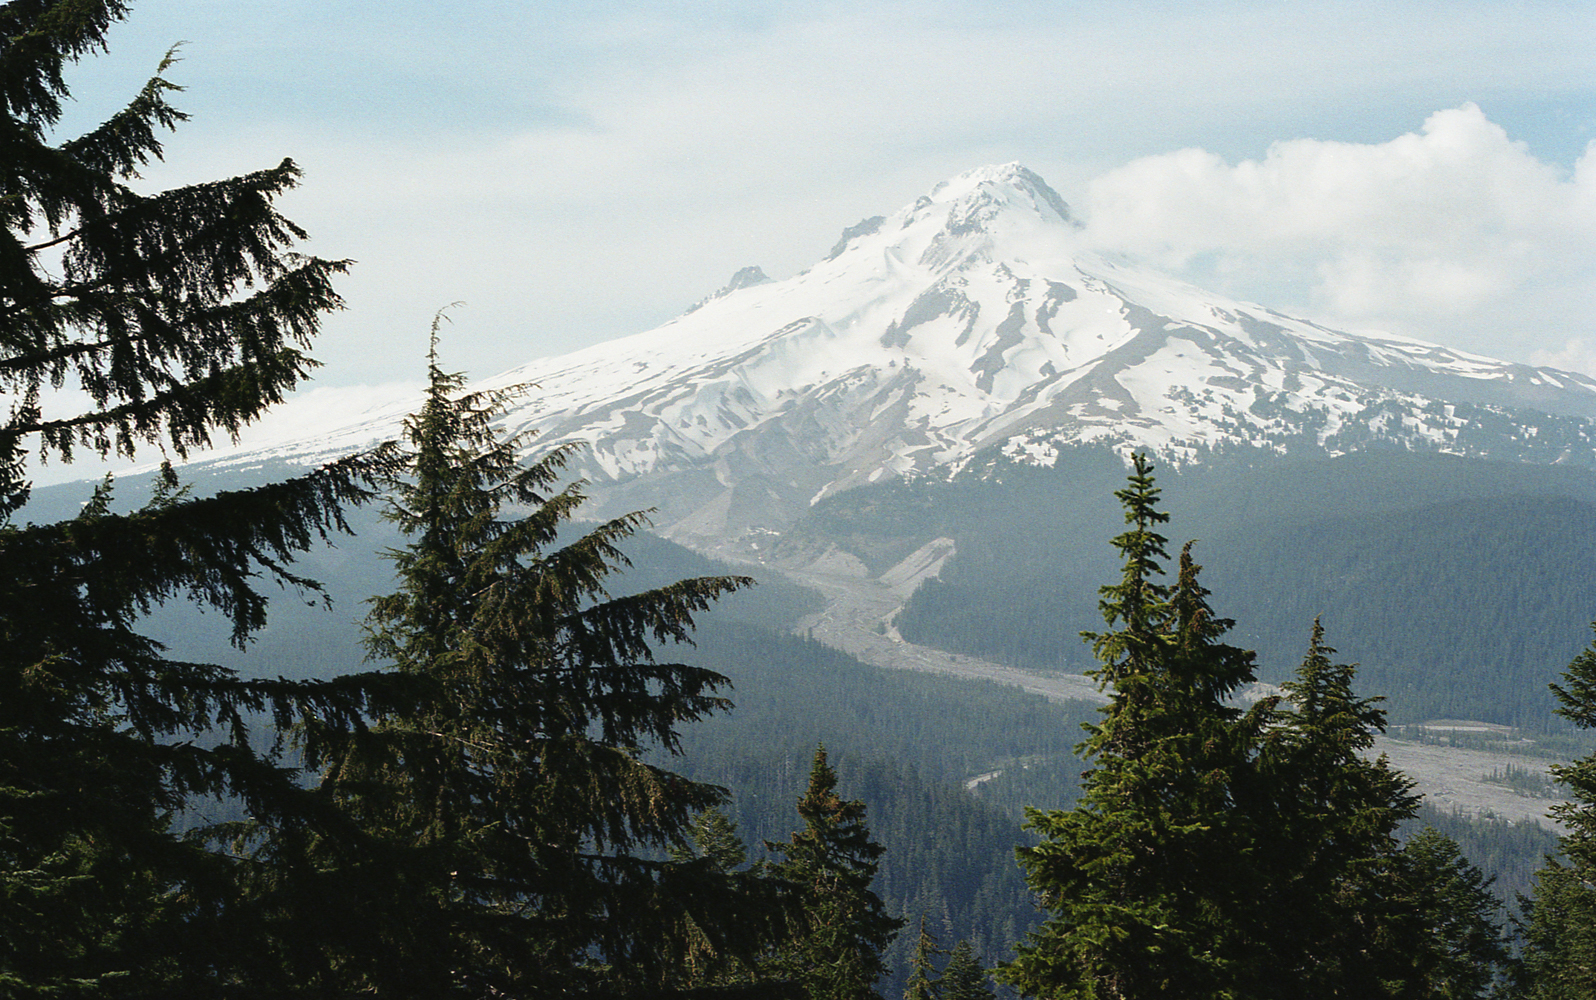 01-22 Mt Hood and White river canyon from Barlow Butte.jpg